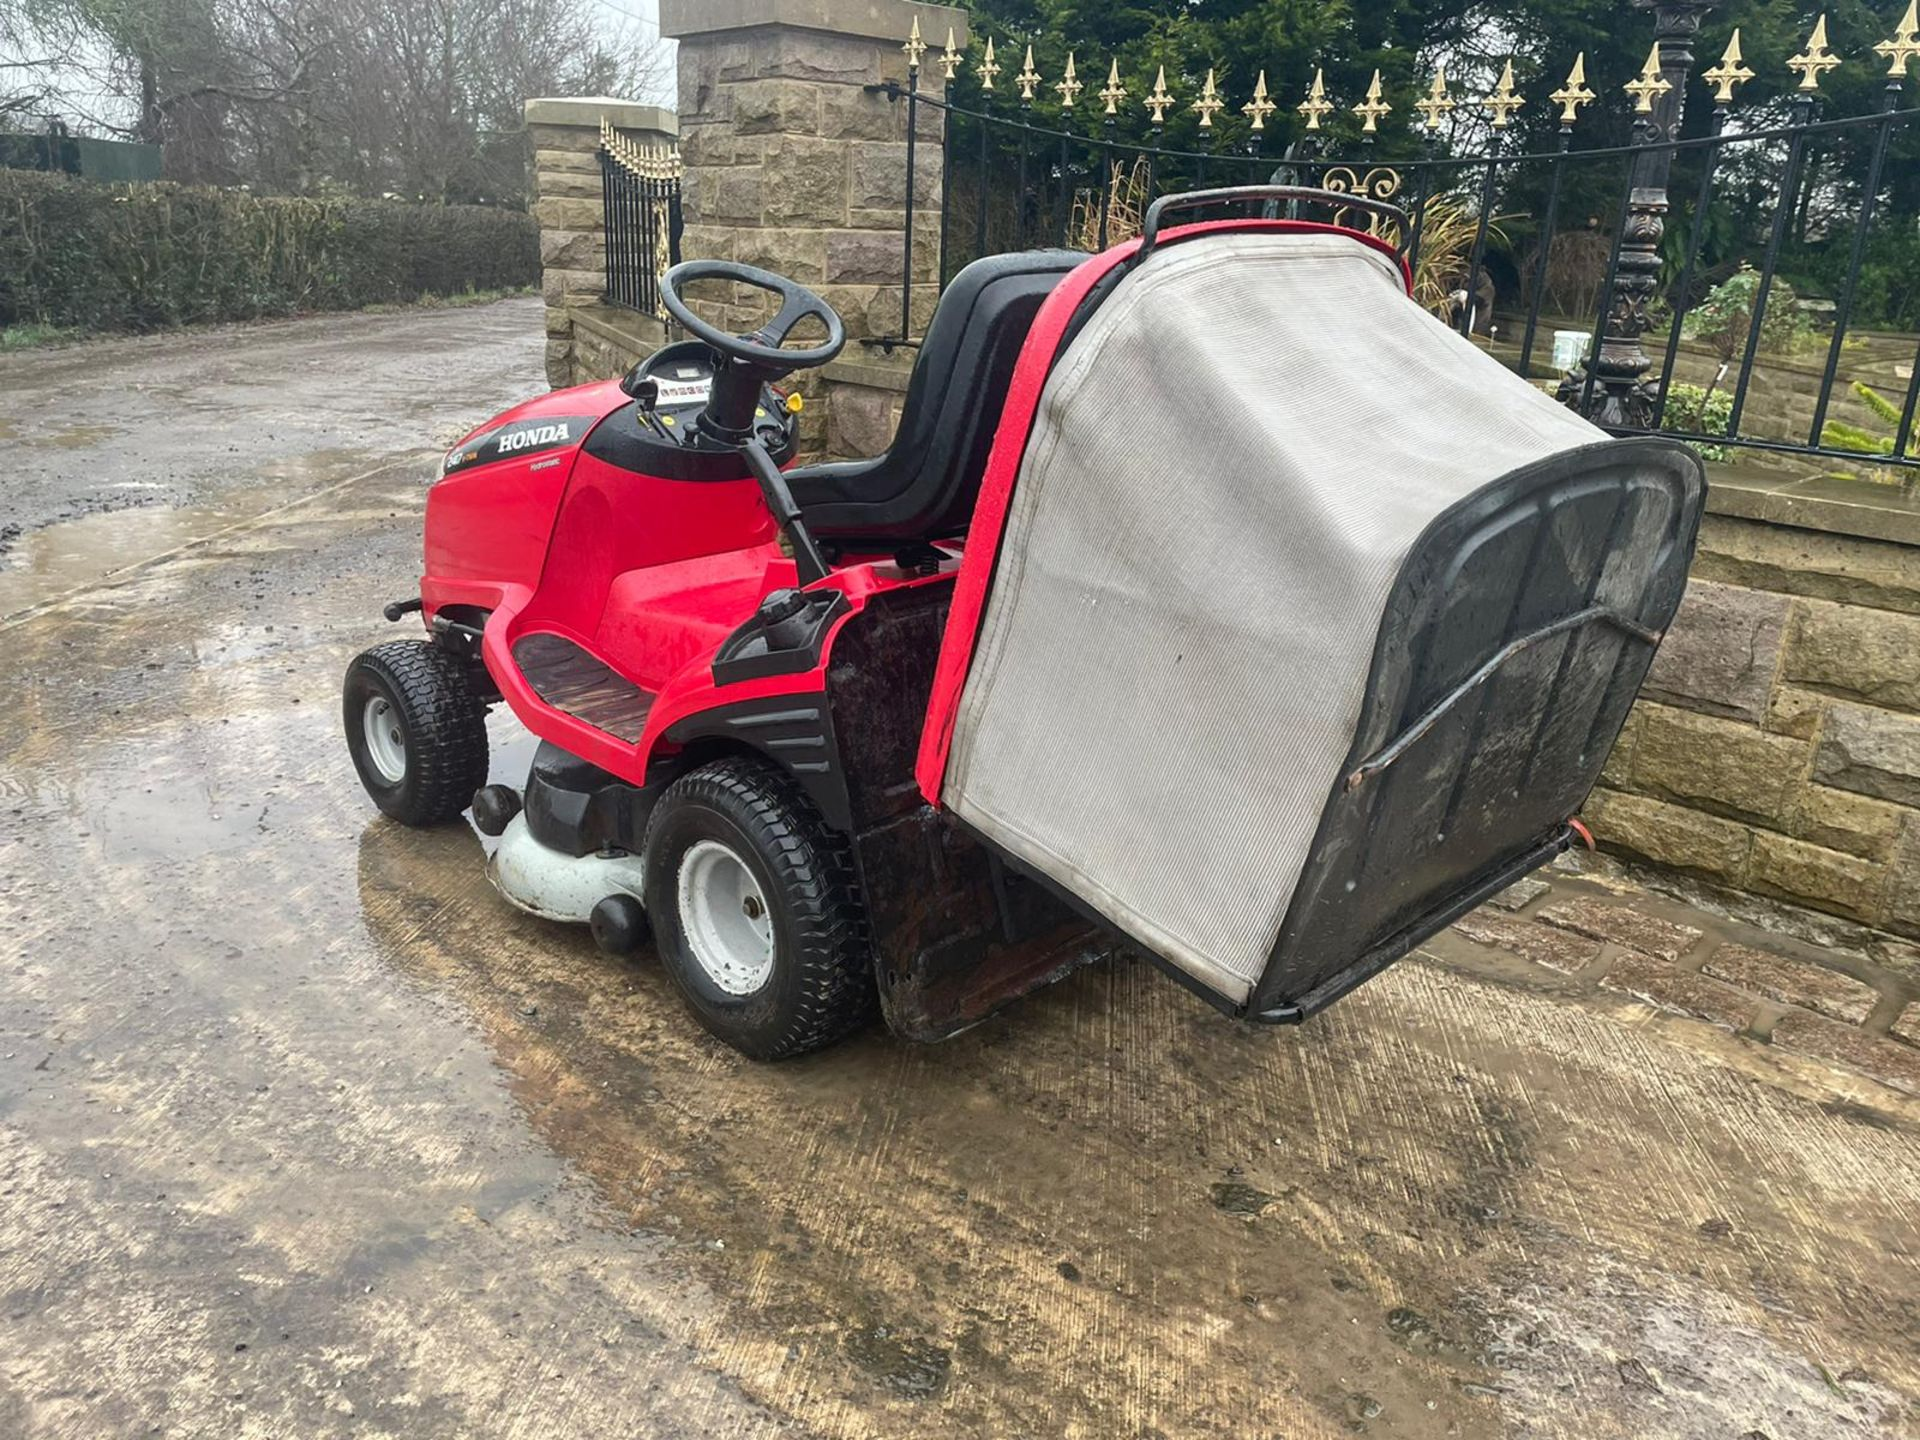 HONDA 2417 V TWIN RIDE ON MOWER, RUNS, DRIVES AND CUTS, ELECTRIC COLLECTOR, CLEAN MACHINE *NO VAT* - Image 3 of 5